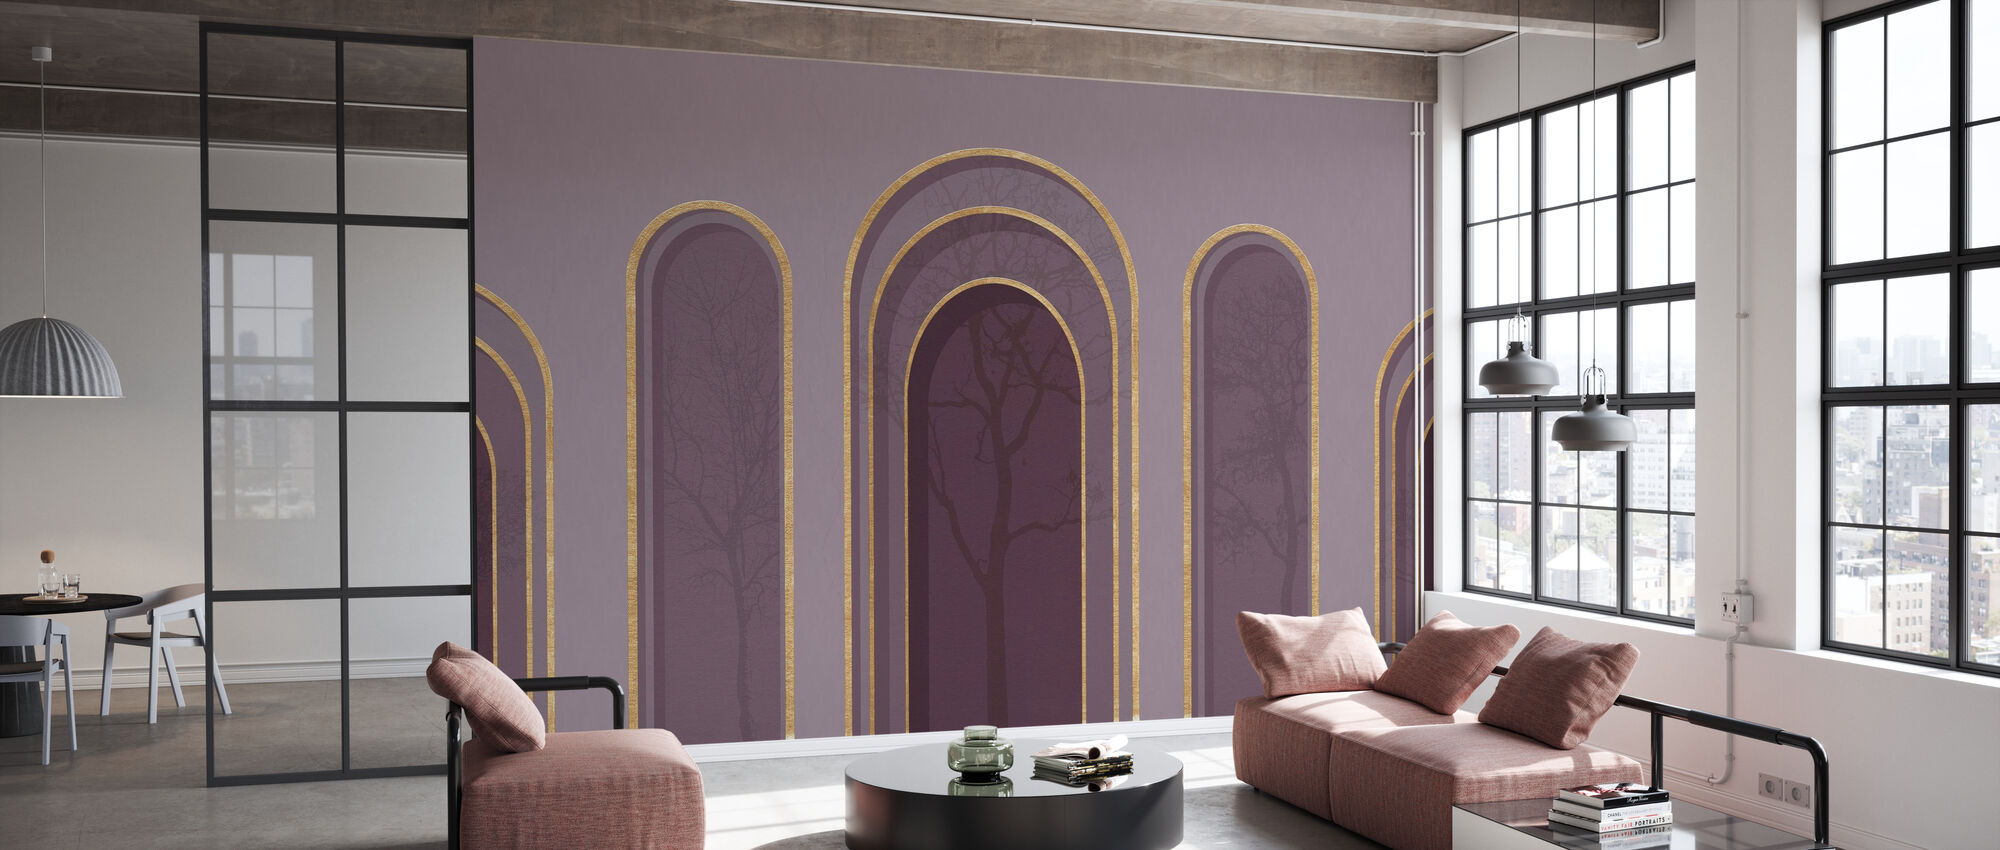 Arch Adornment with Trees - Violet - Wallpaper - Office